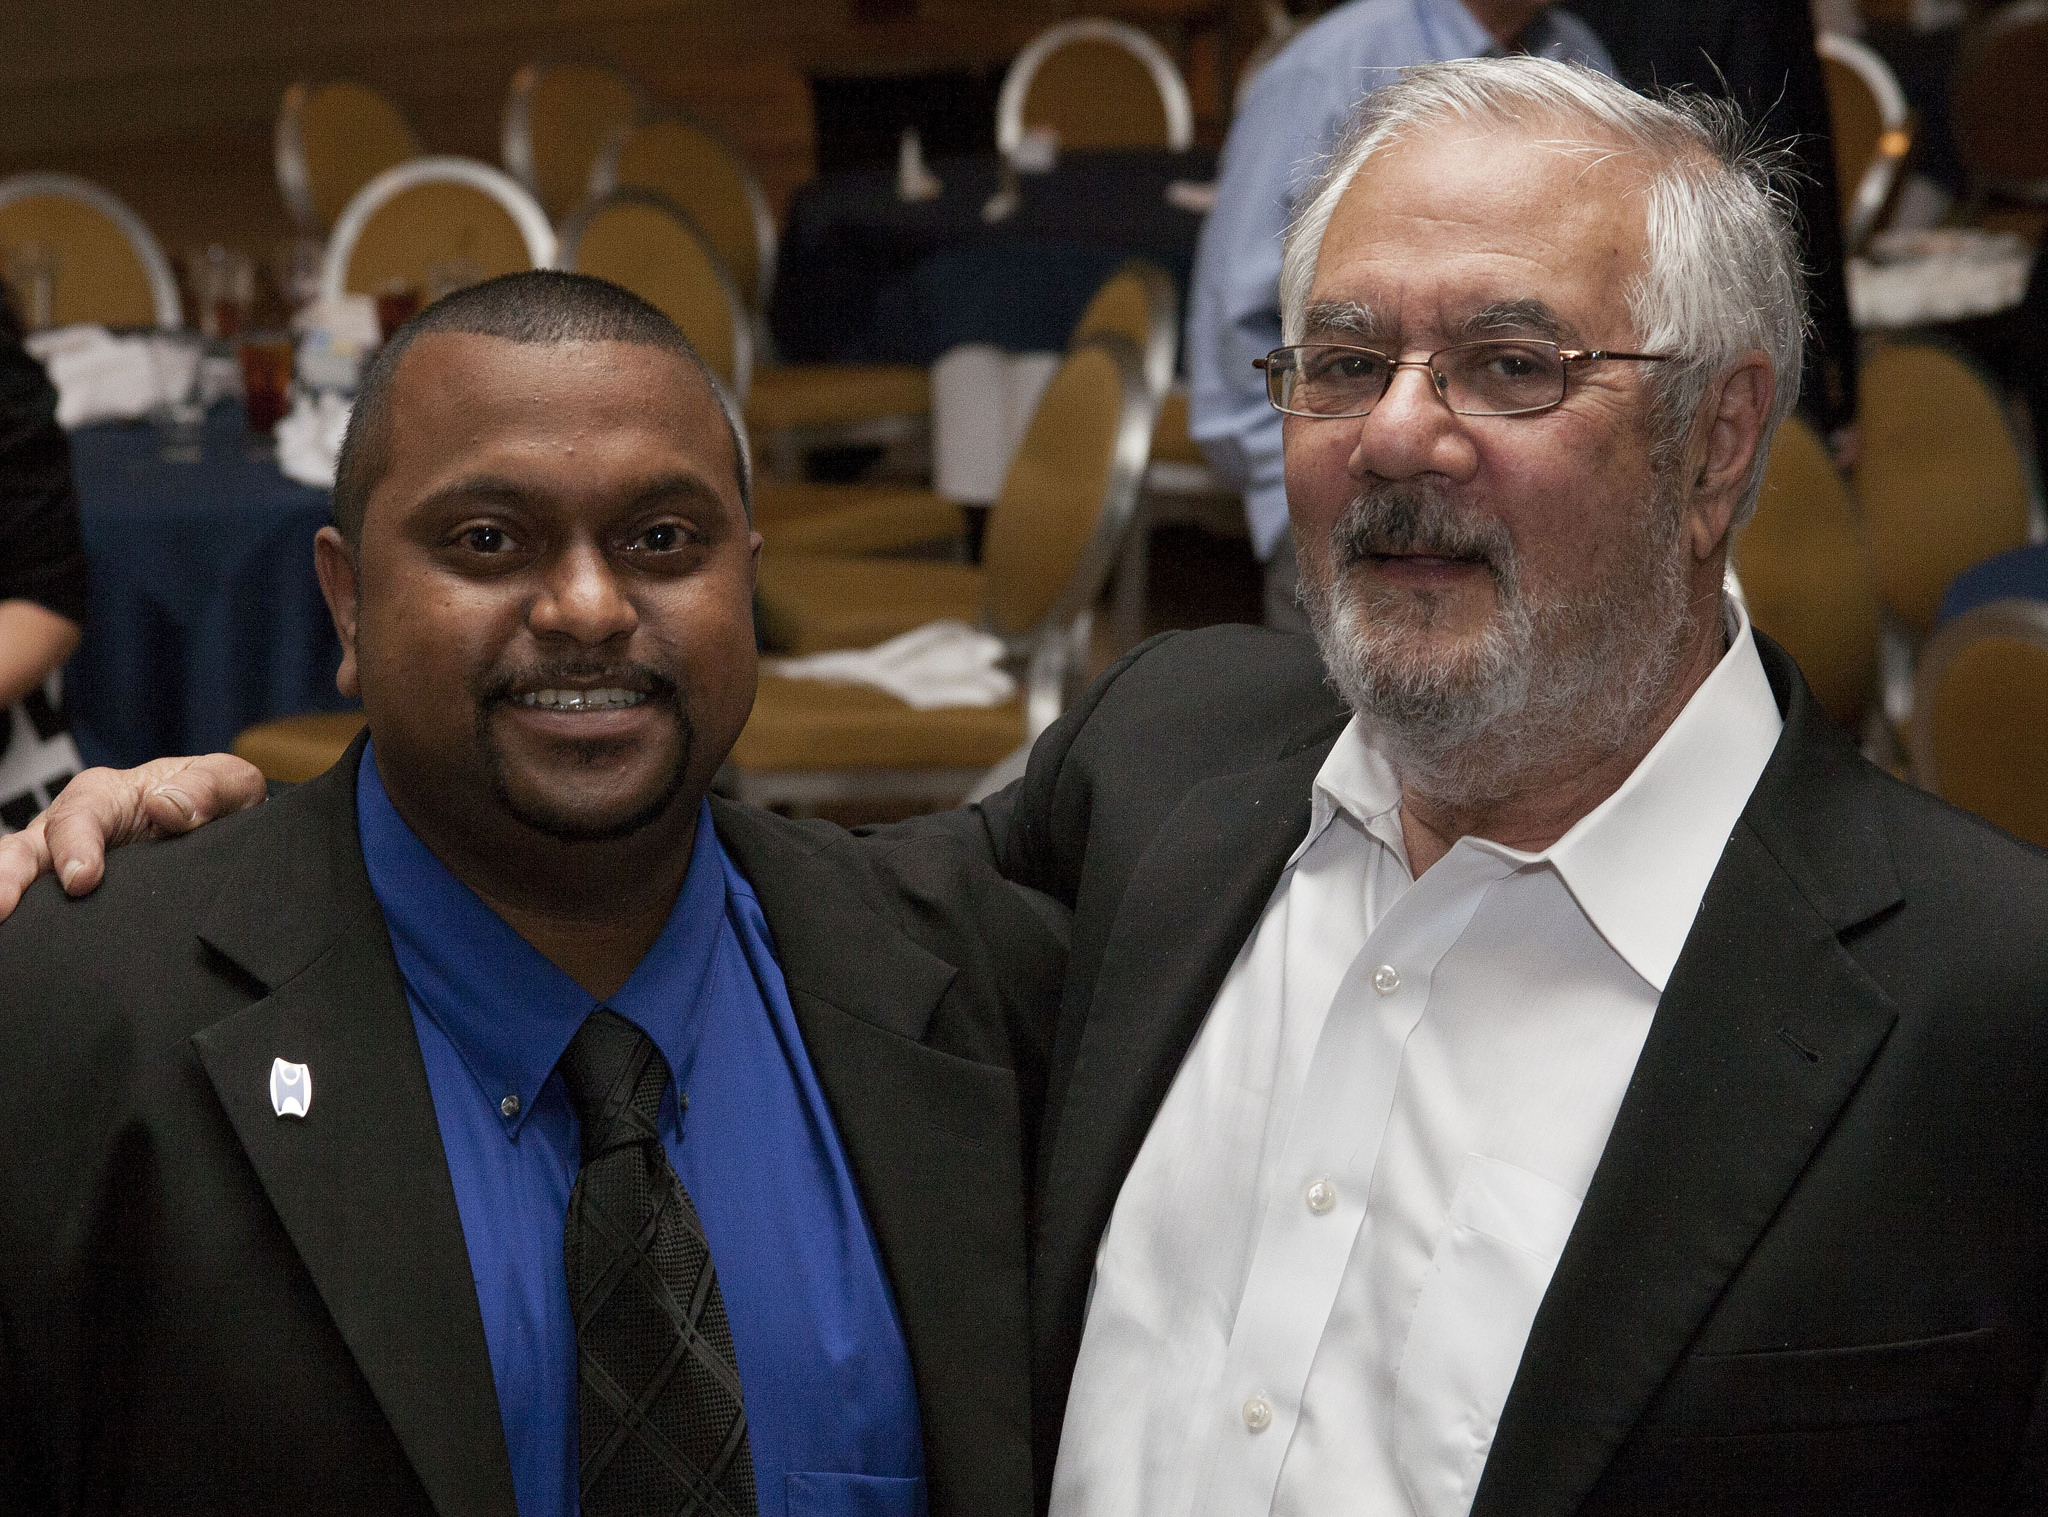 Bishop McNeill, Freethought Equality Fund PAC Coordinator, with 2014 Humanist of the Year Barney Frank